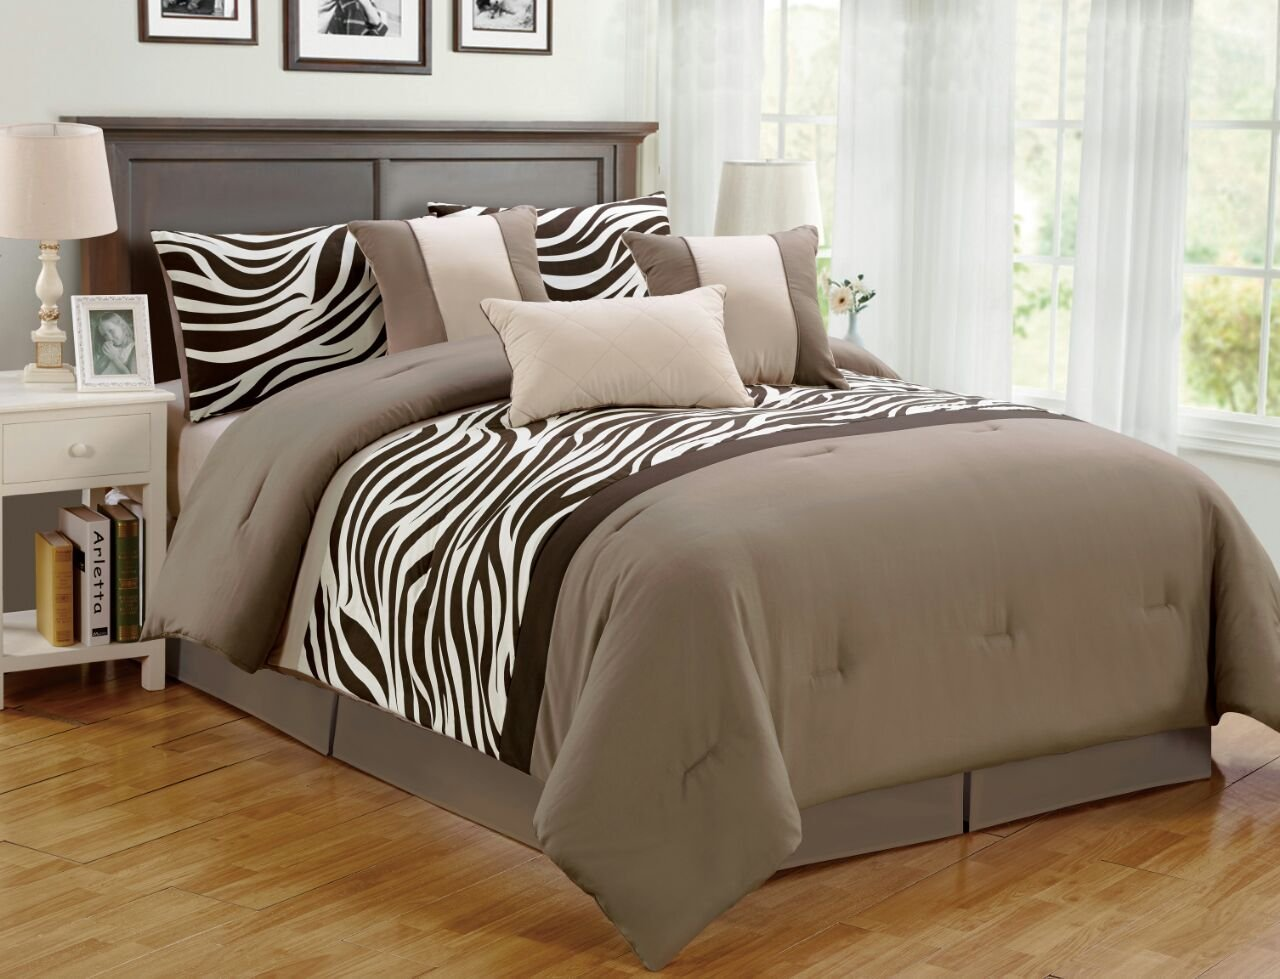 7 Pieces Comforter Set Bed In A Bag (Oversize) Zebra Animal